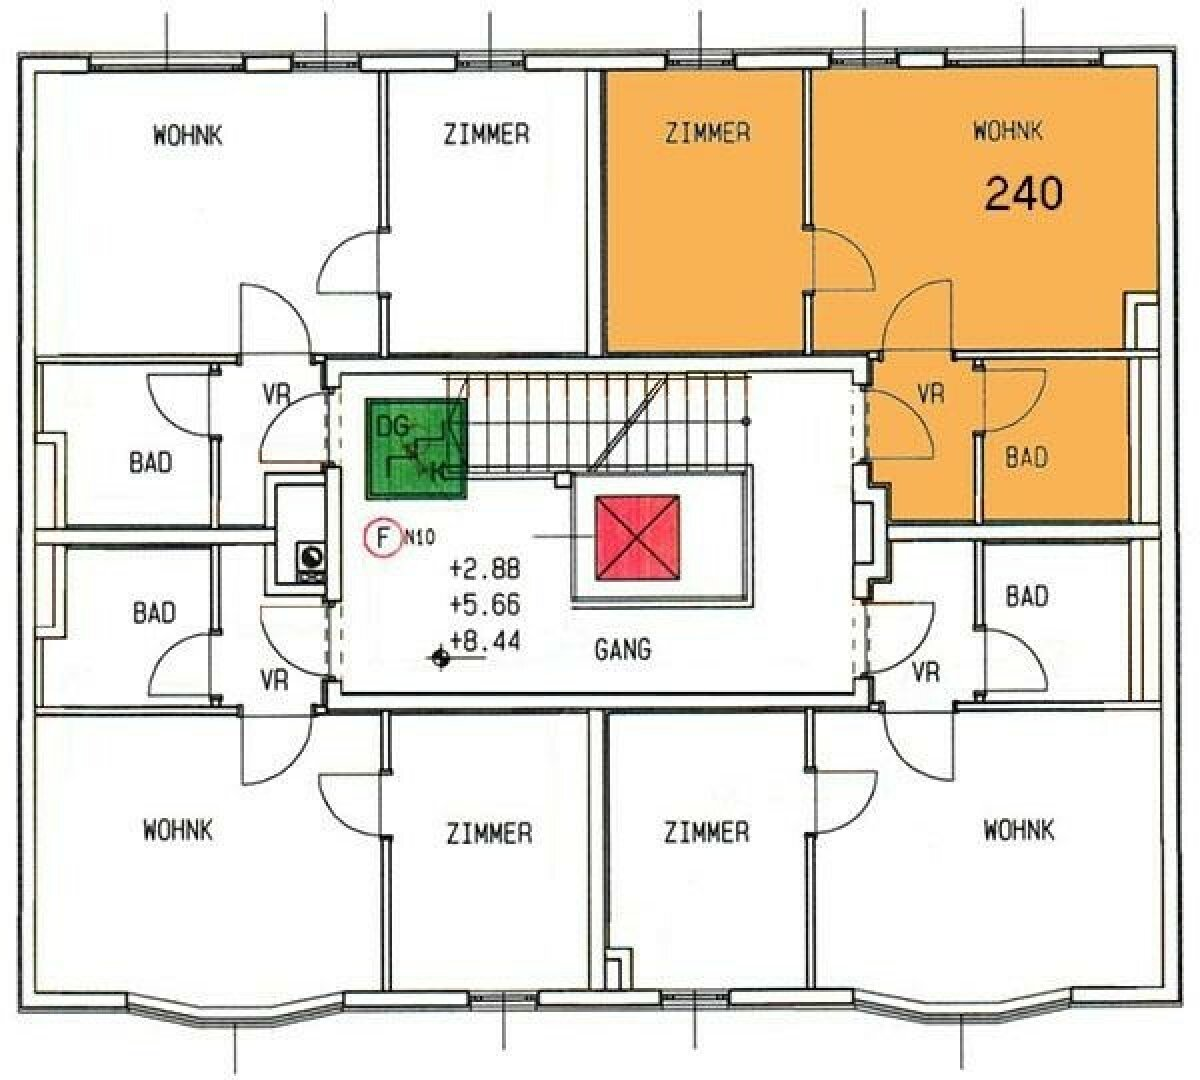 Plan / floorplan